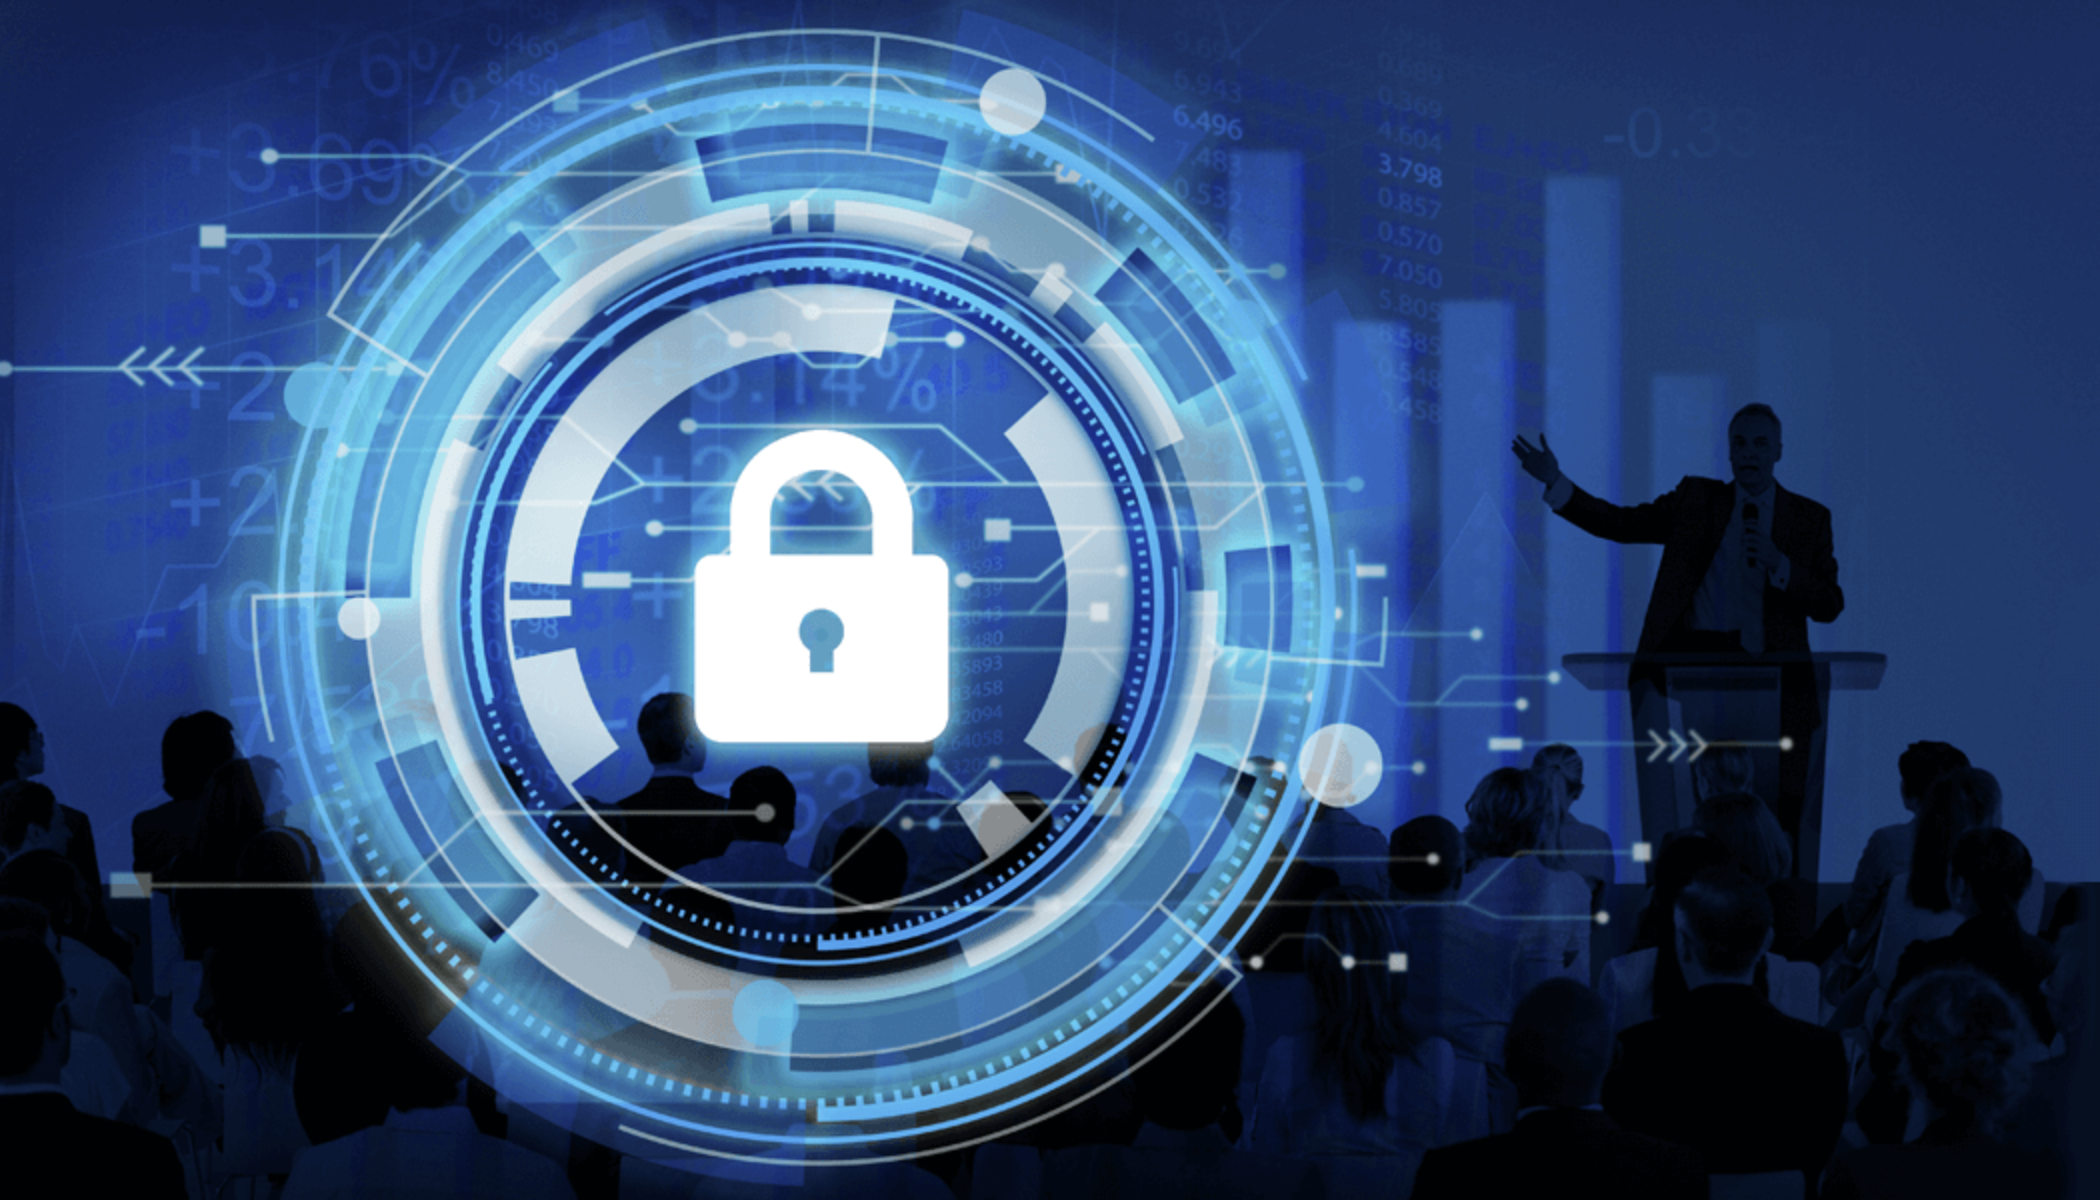 Efficiently managing risks with Cyber Threat Intelligence